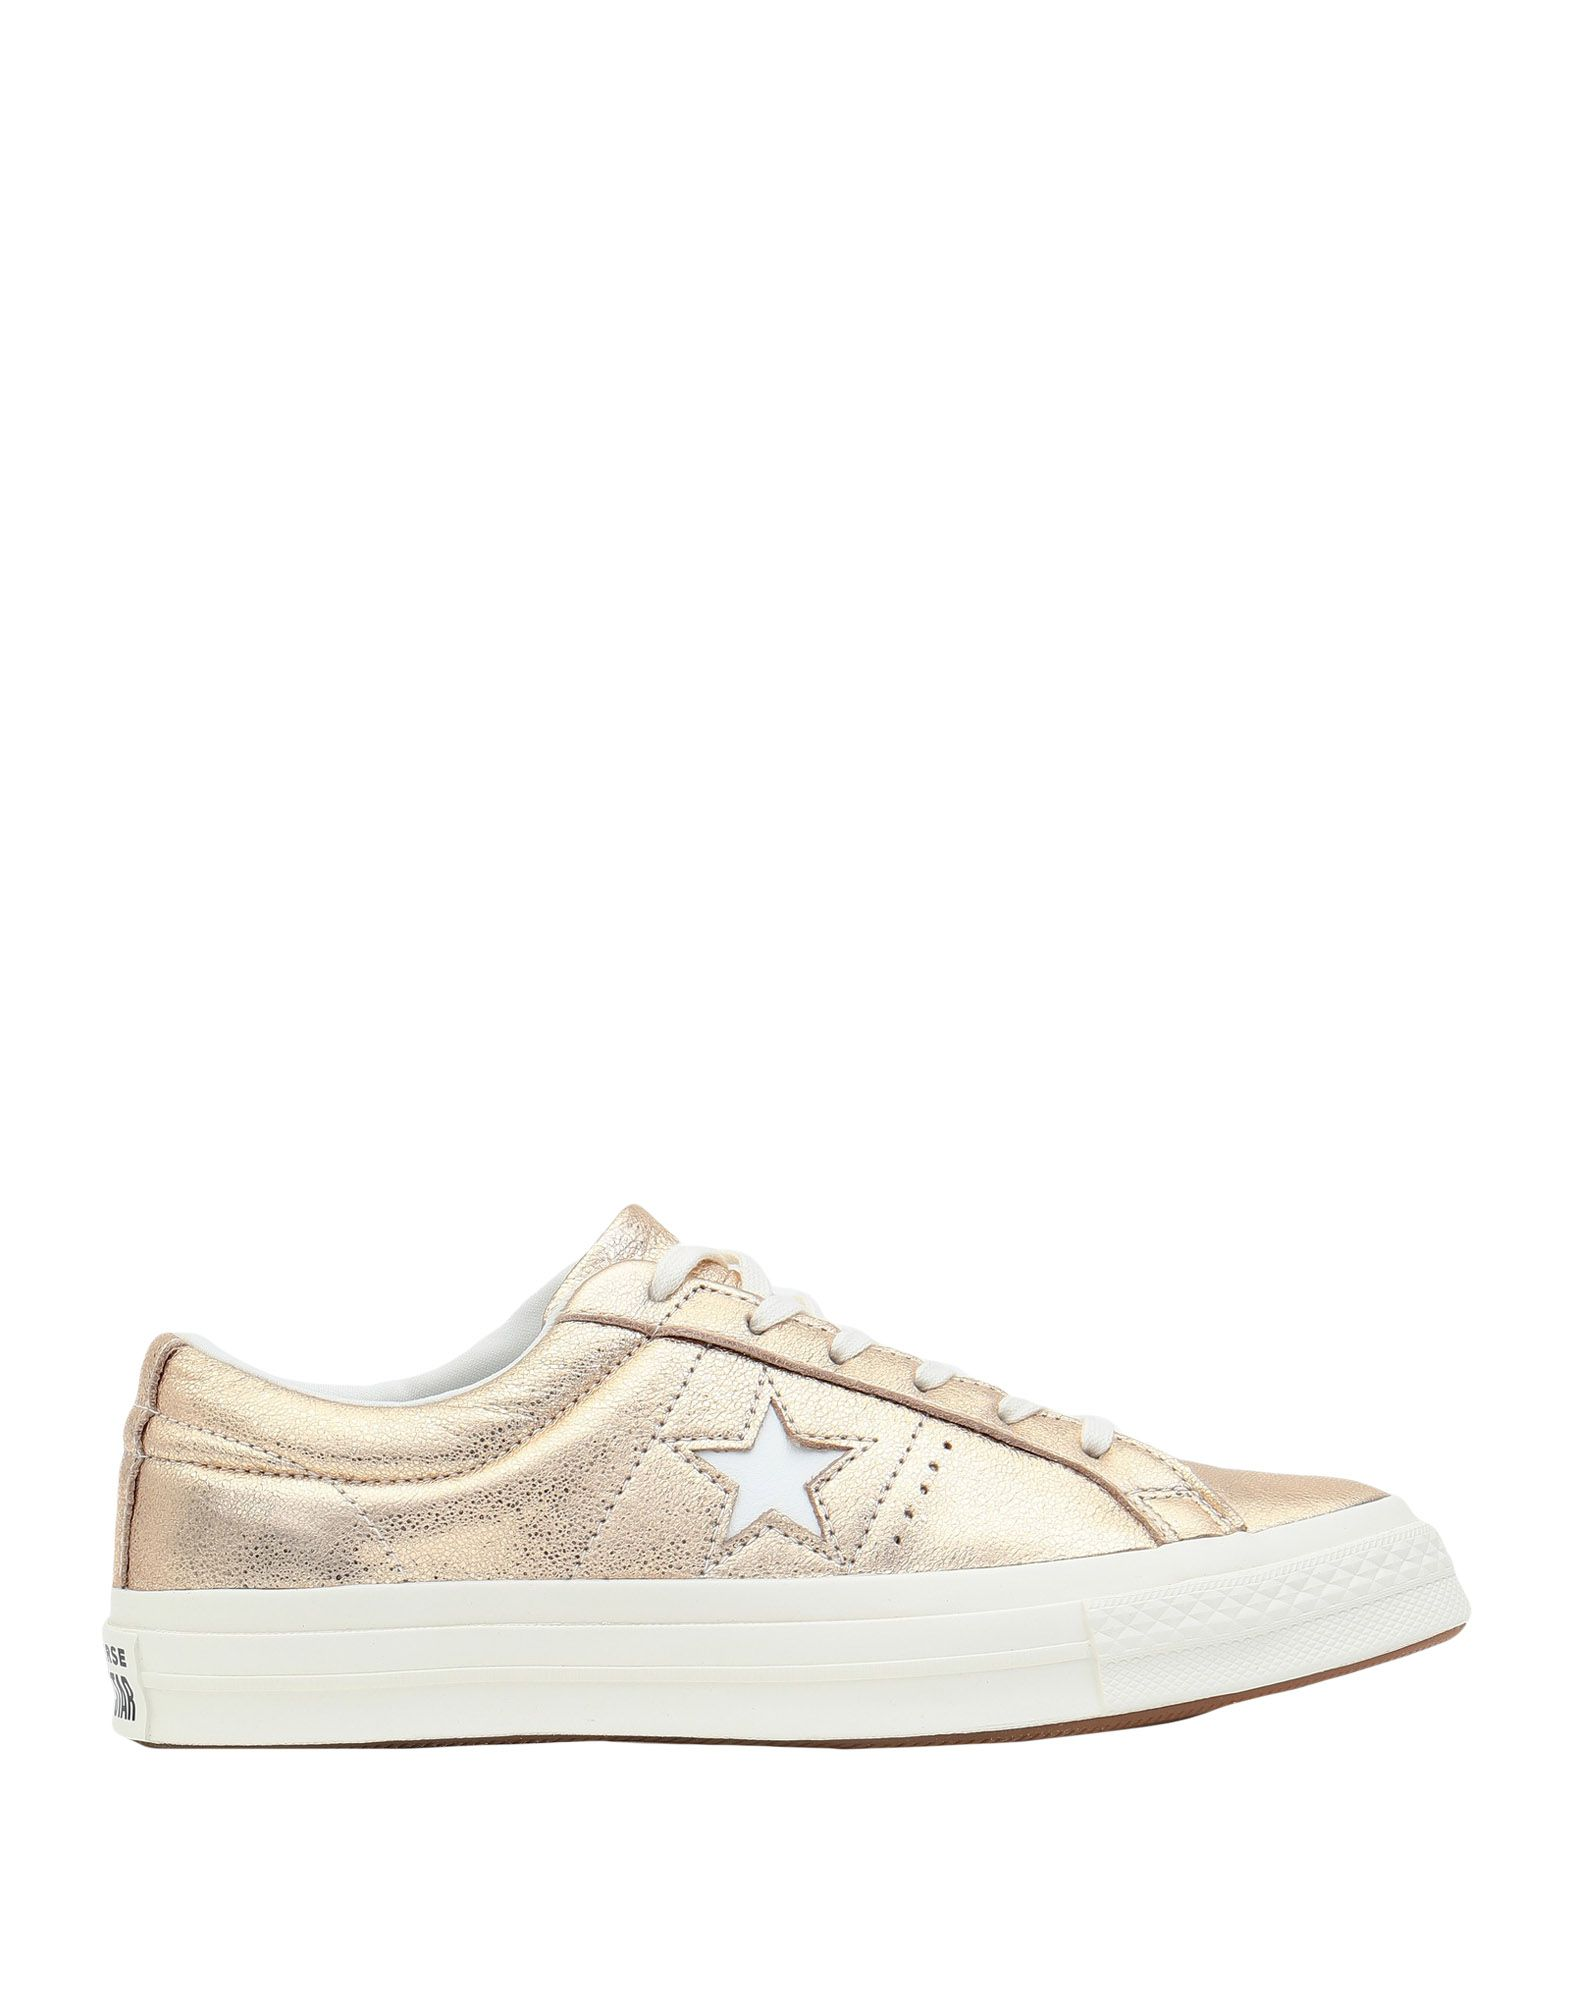 Turnschuhe Converse All Star One Star Ox - damen - 11574801IF